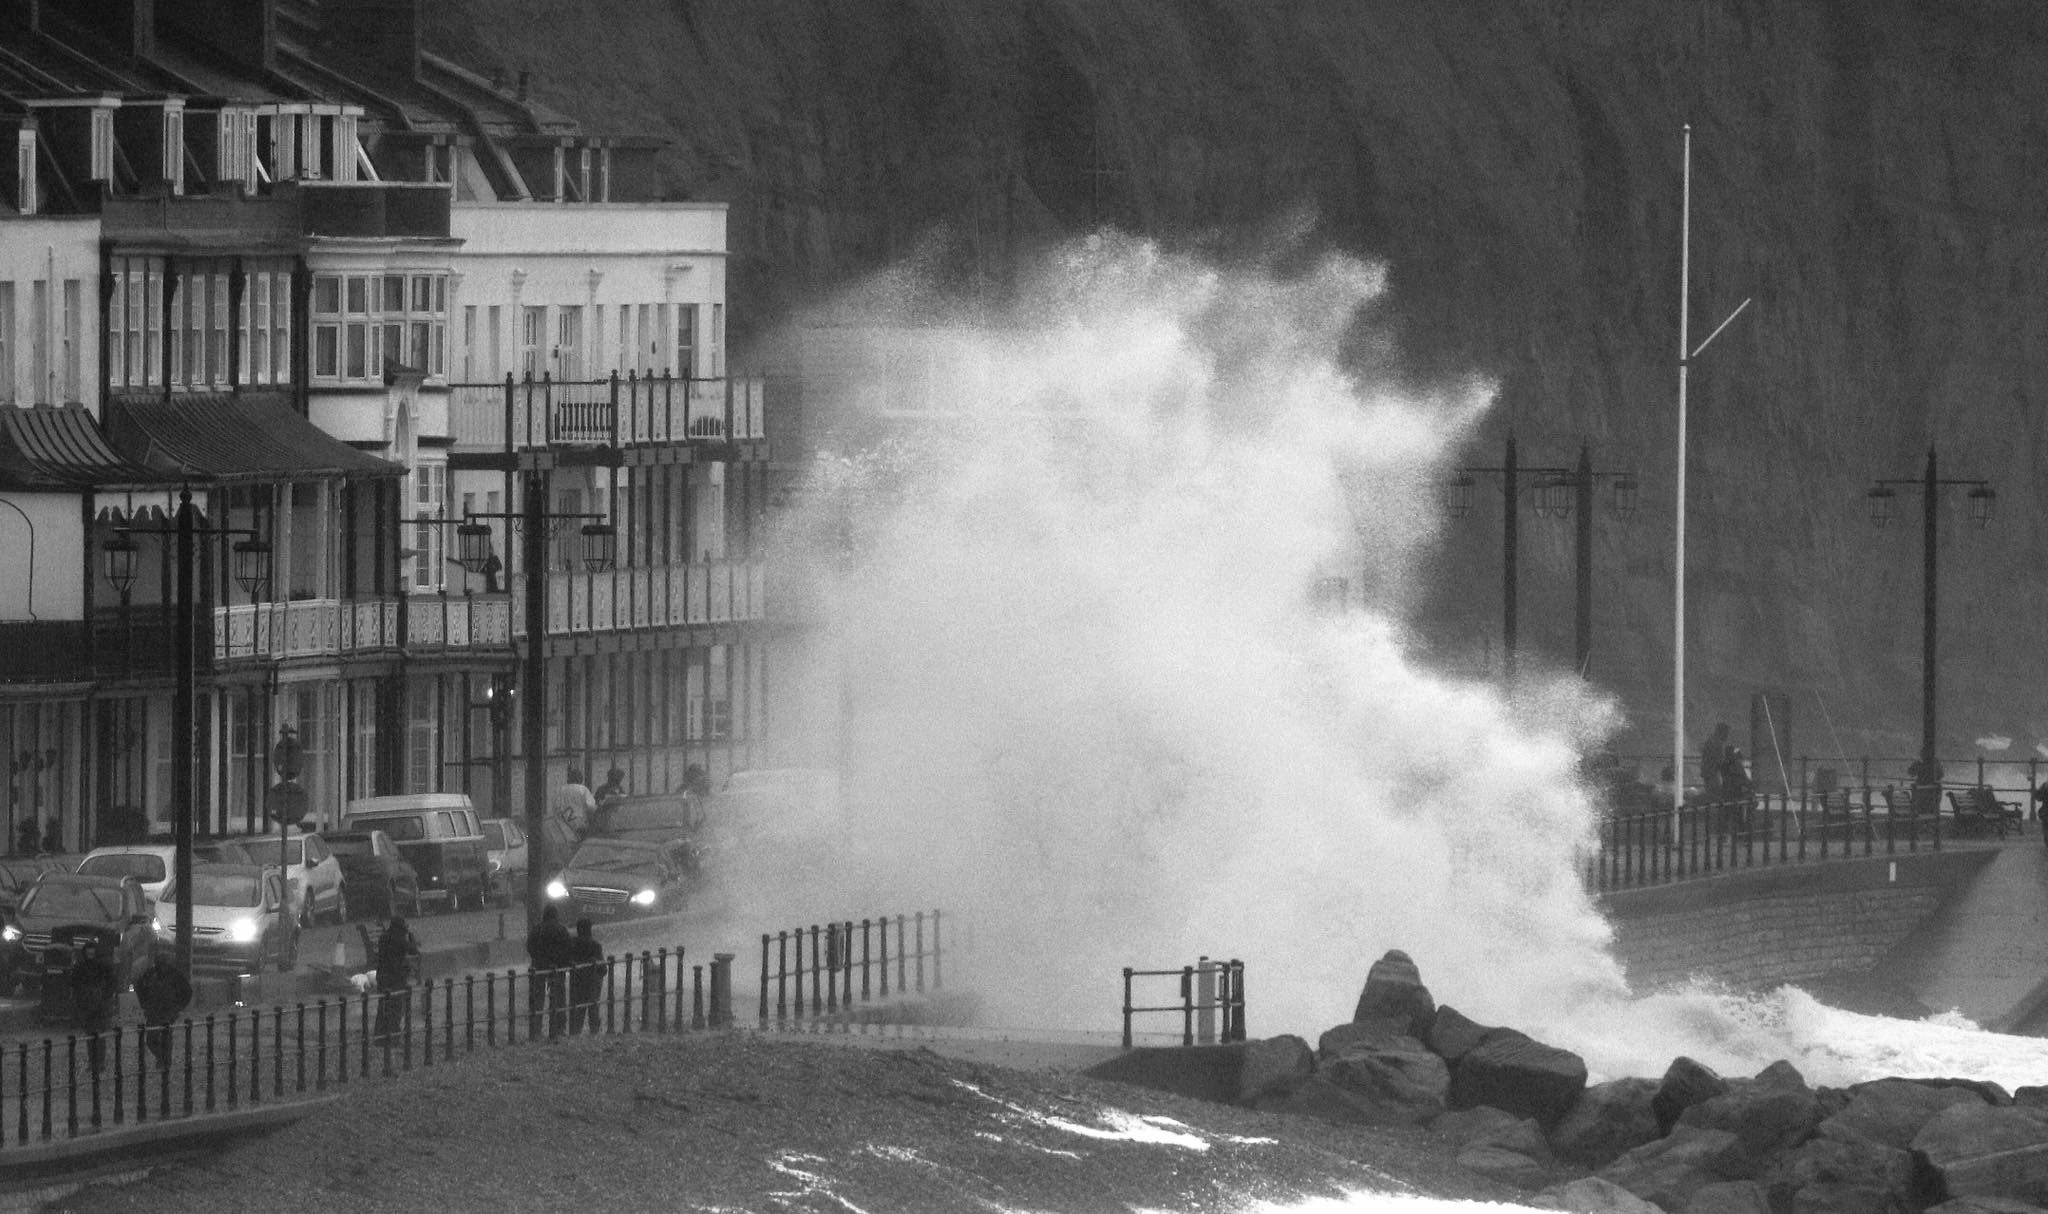 Storm Dennis: Huge waves crash into Sidmouth seafront. Picture: Simon Horn LRPS